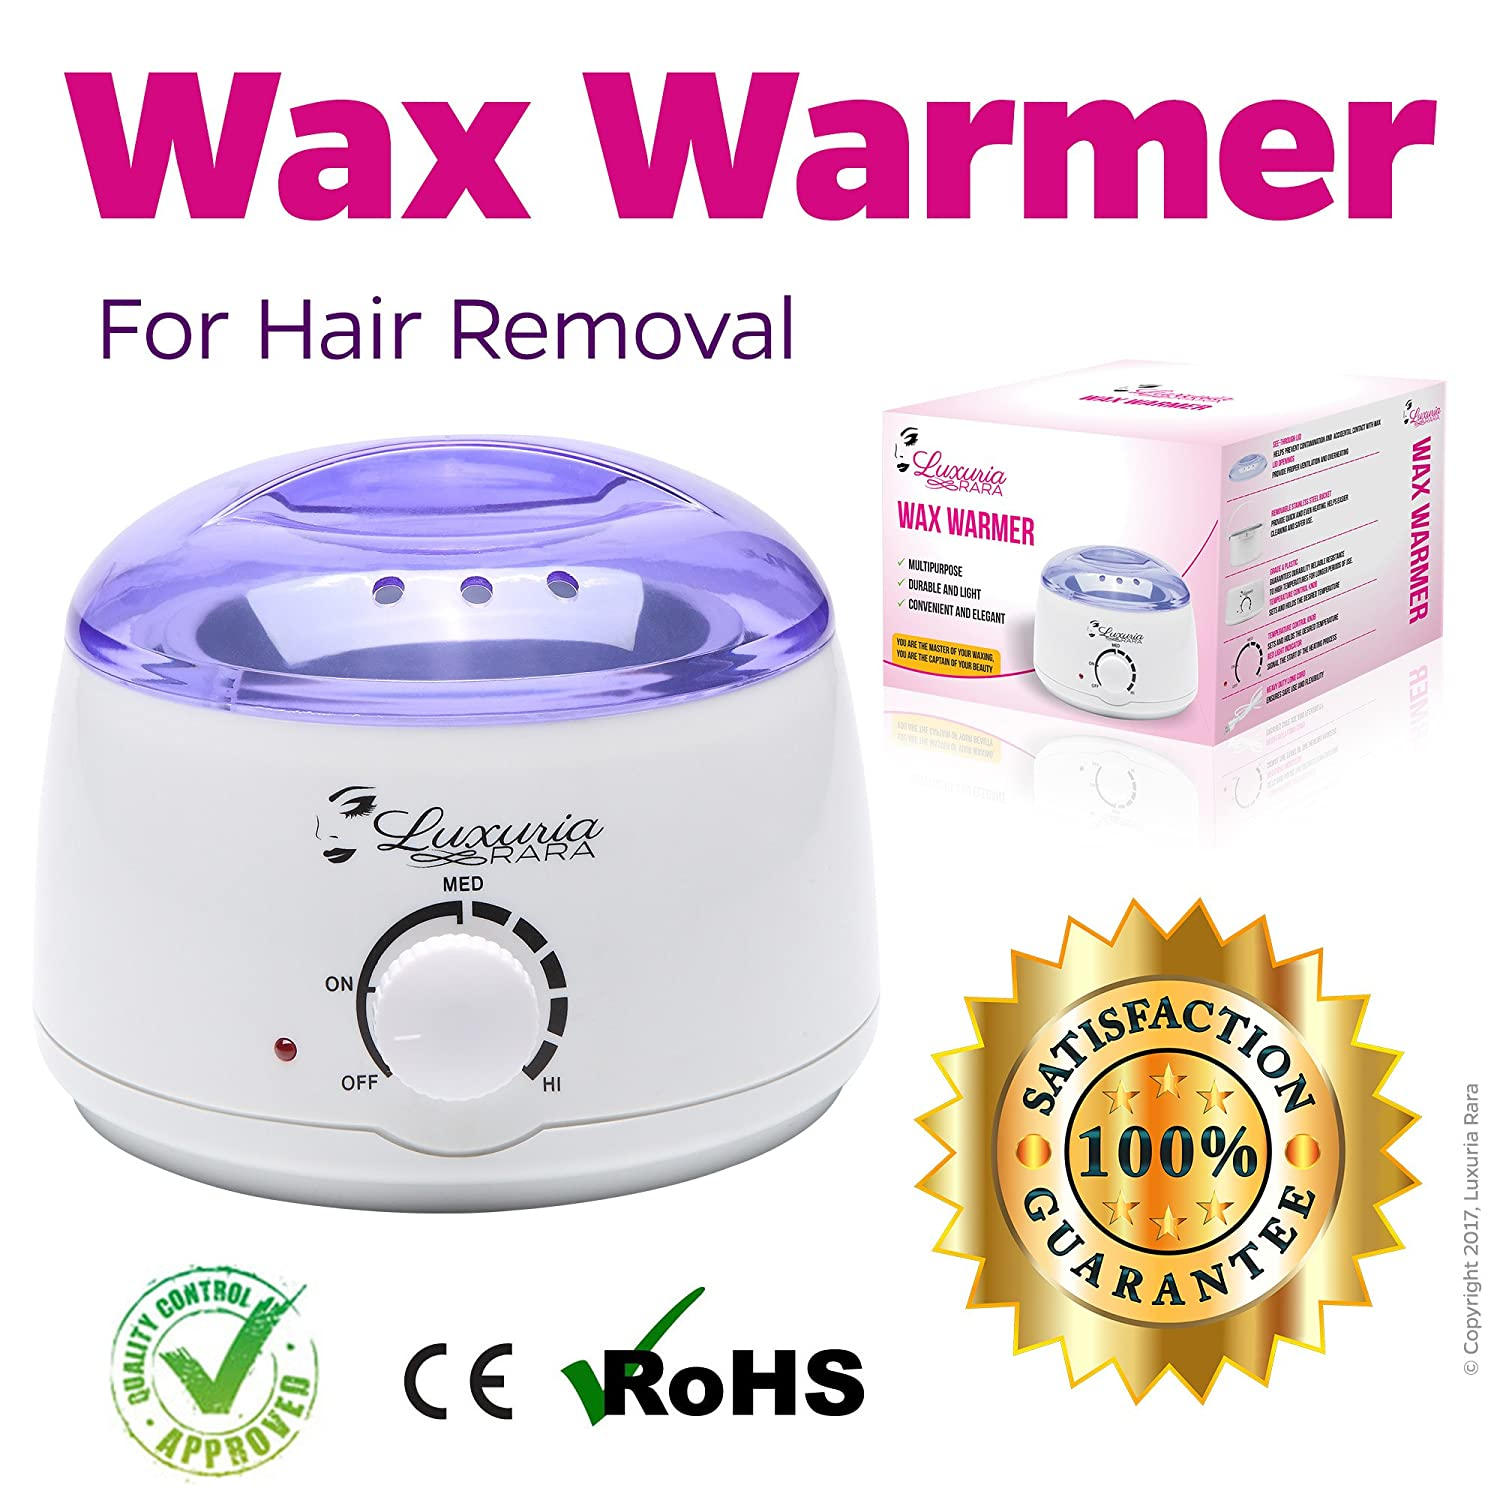 Luxuria Rara Wax Warmer Melting Pot Electric Hot Wax Heater for Facial Hair Removal Total Body Brazilian Waxing Salon or Self-waxing Portable Plug in Full Size Single Paraffin Can and All Types of Hair Removal Wax LR-101